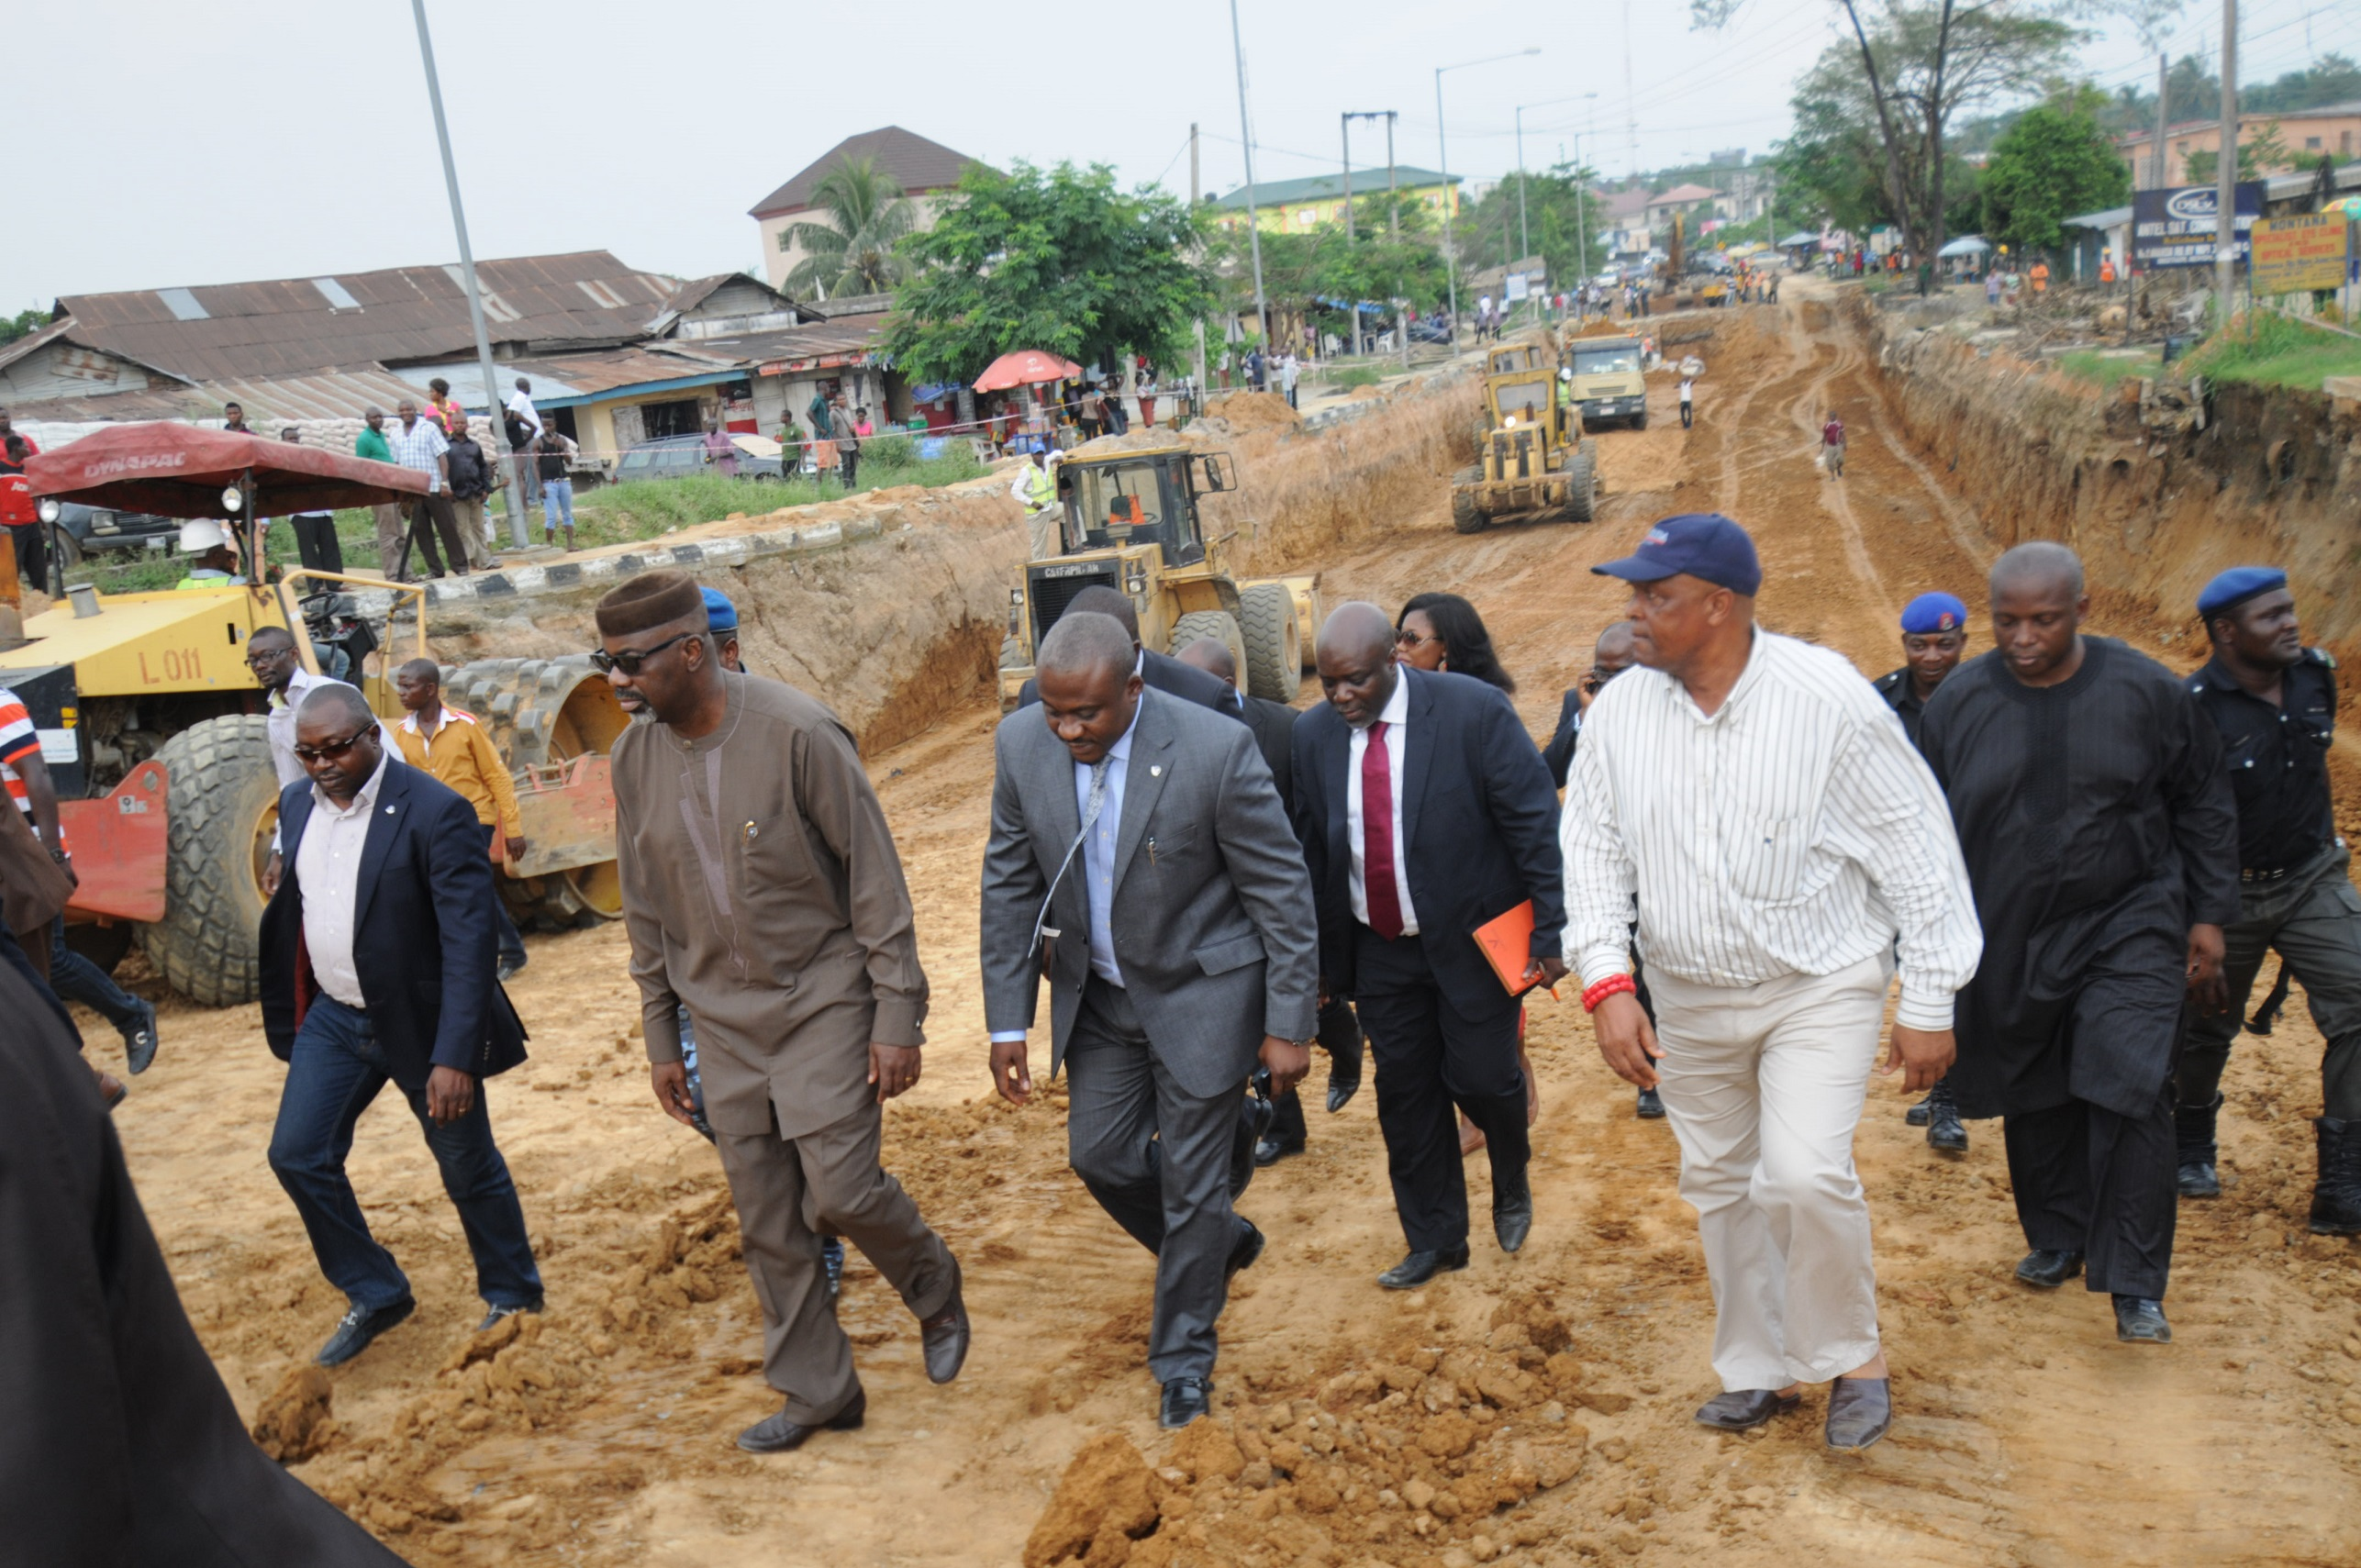 Governor Imoke (2nd left) and Legor Idagbo (2nd right) inspecting the Airport By-Pass road project